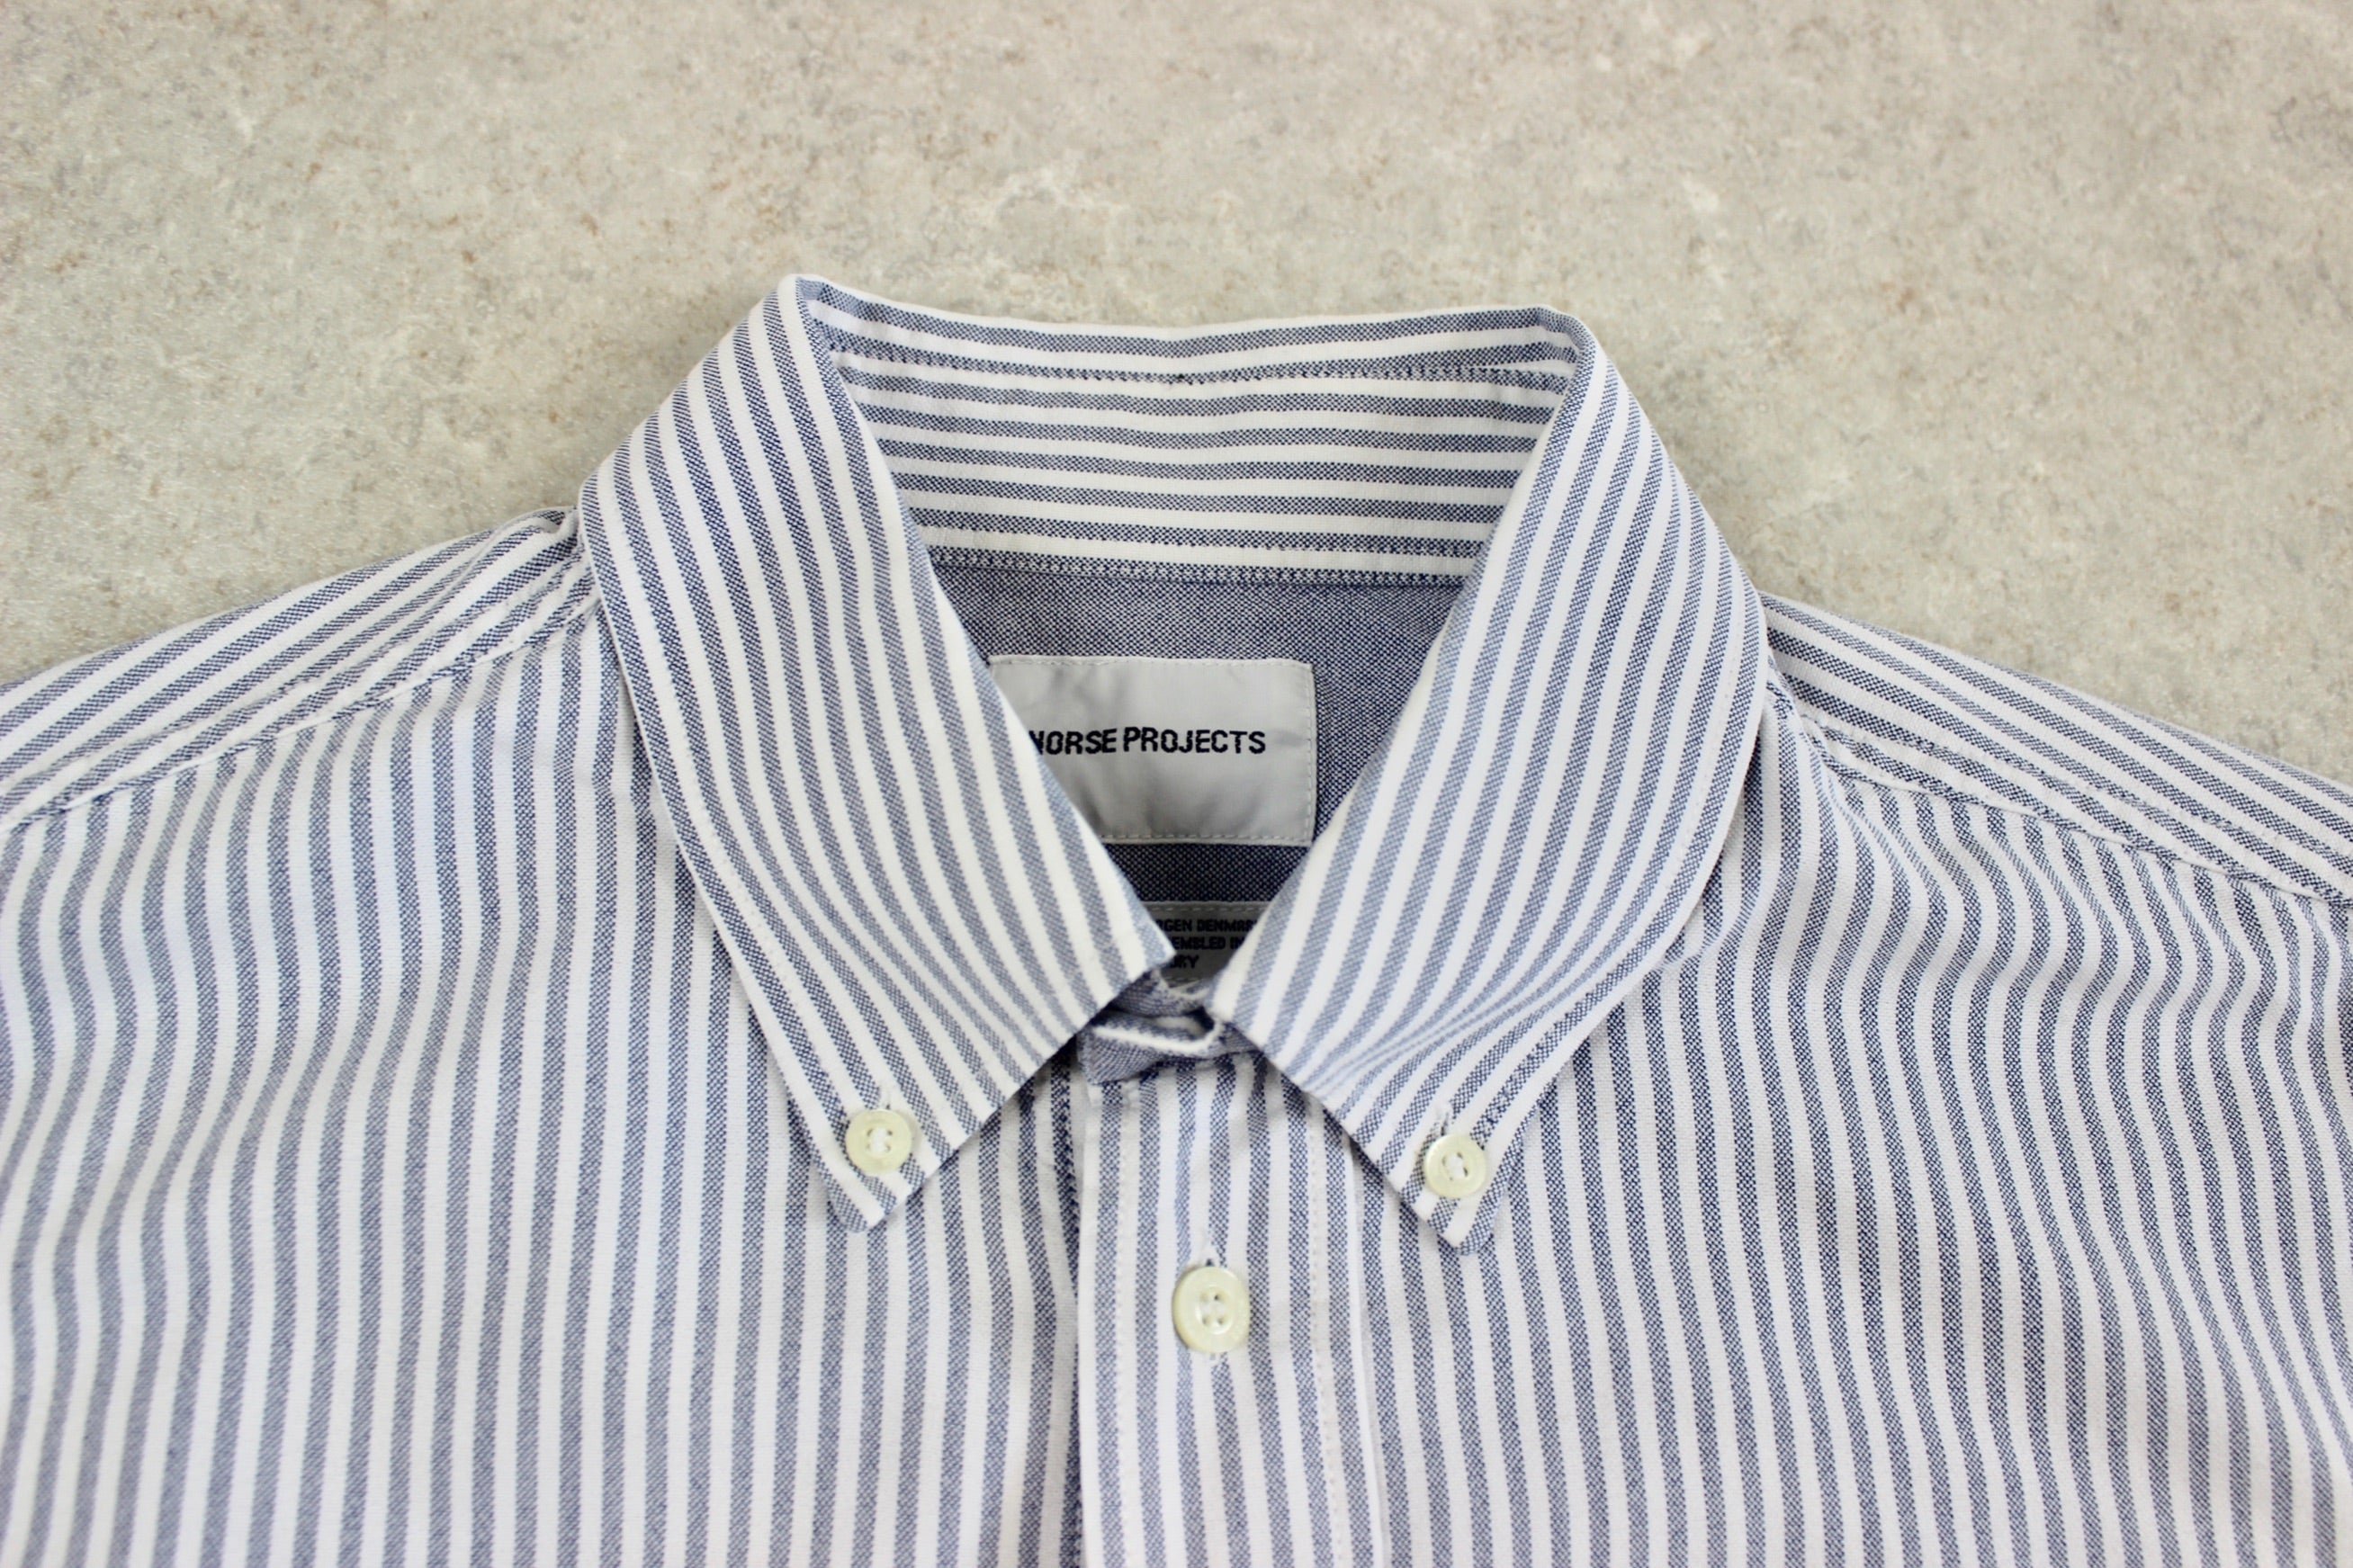 Norse Projects - Shirt - Blue/White Stripe - Medium